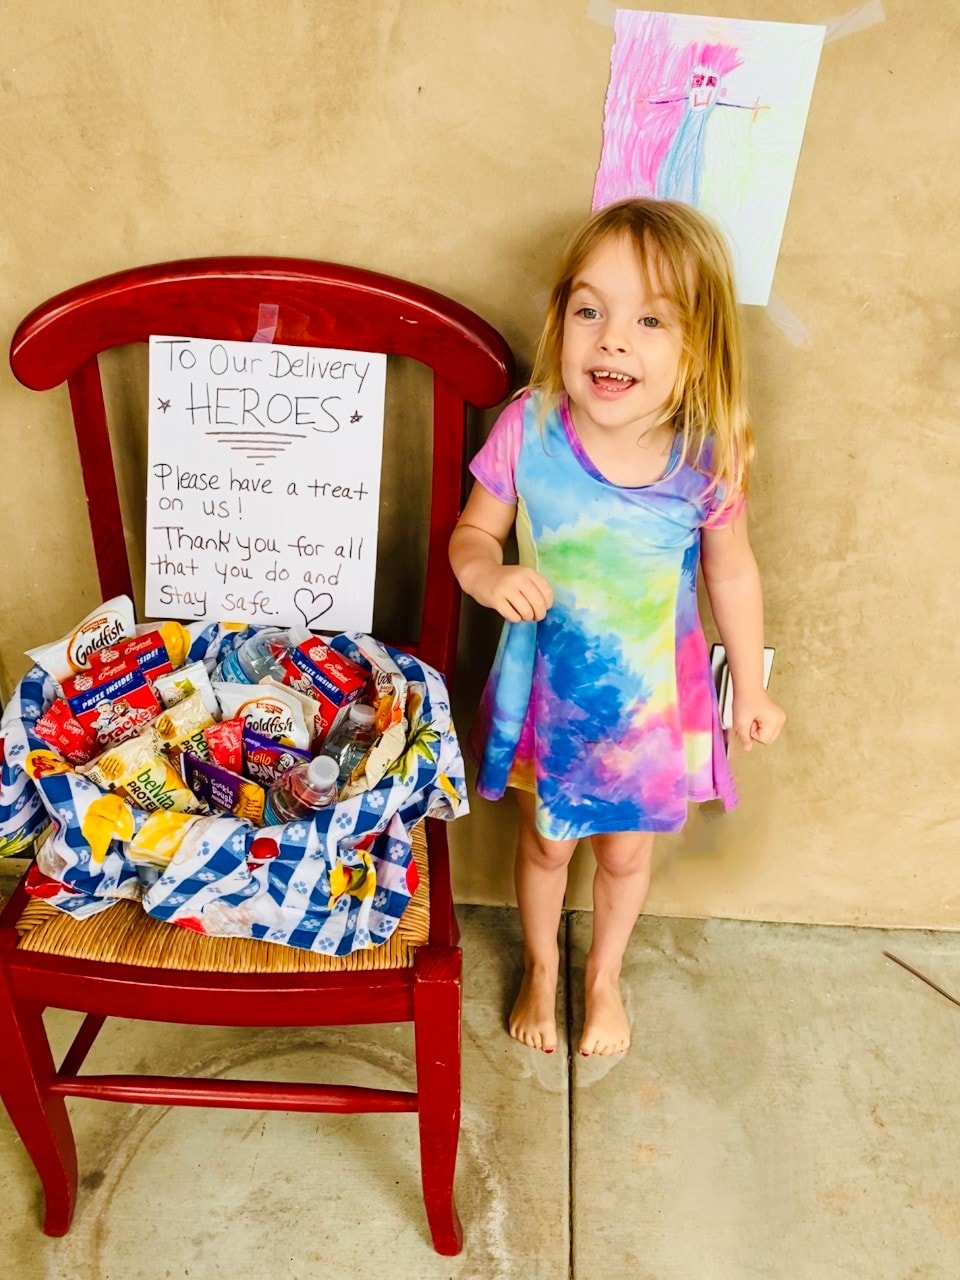 image of small child standing next to a chair with a basket of snacks and drinks and a note that says 'To our Delivery heroes. Please have a treat on us! Thank you for all that you do and Stay Safe'